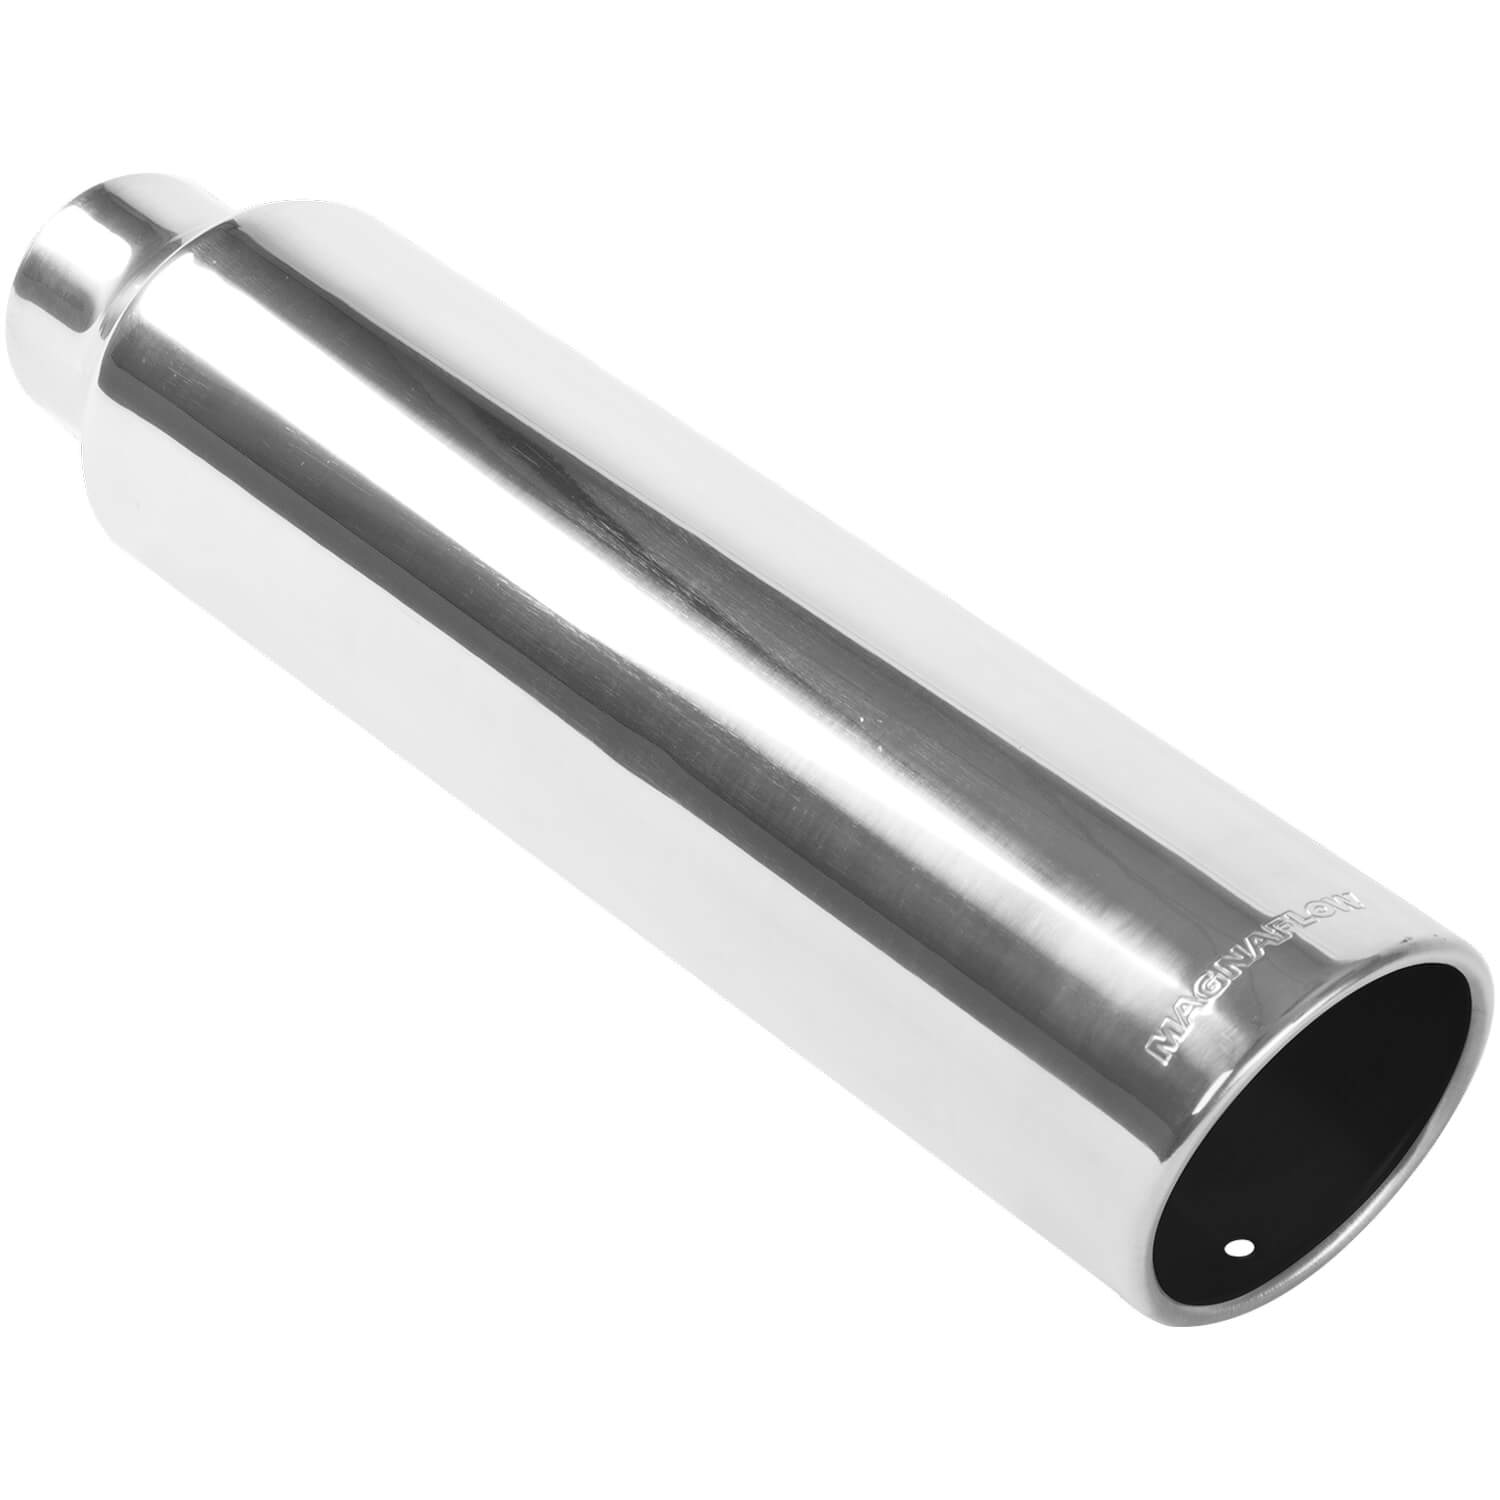 Magnaflow 35217 - Magnaflow Polished Stainless Steel Weld-On Single Exhaust Tips